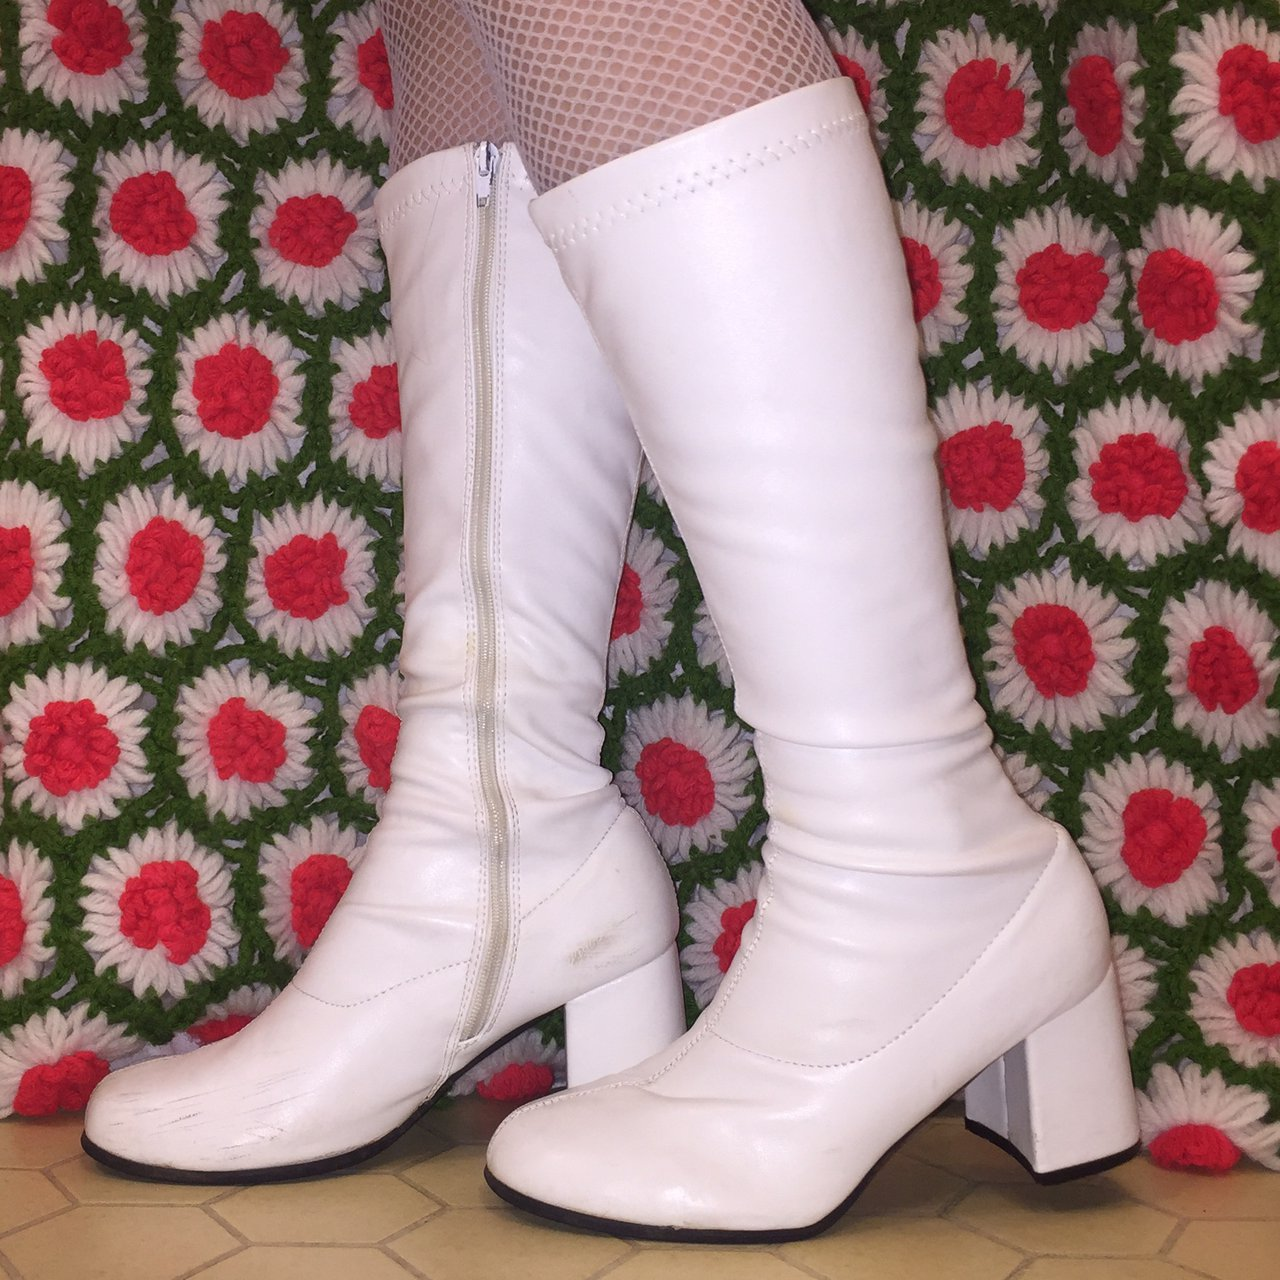 62ca31938 Vintage Style White Gogo Boots! Love These So Much! They Go With Literally  Everything